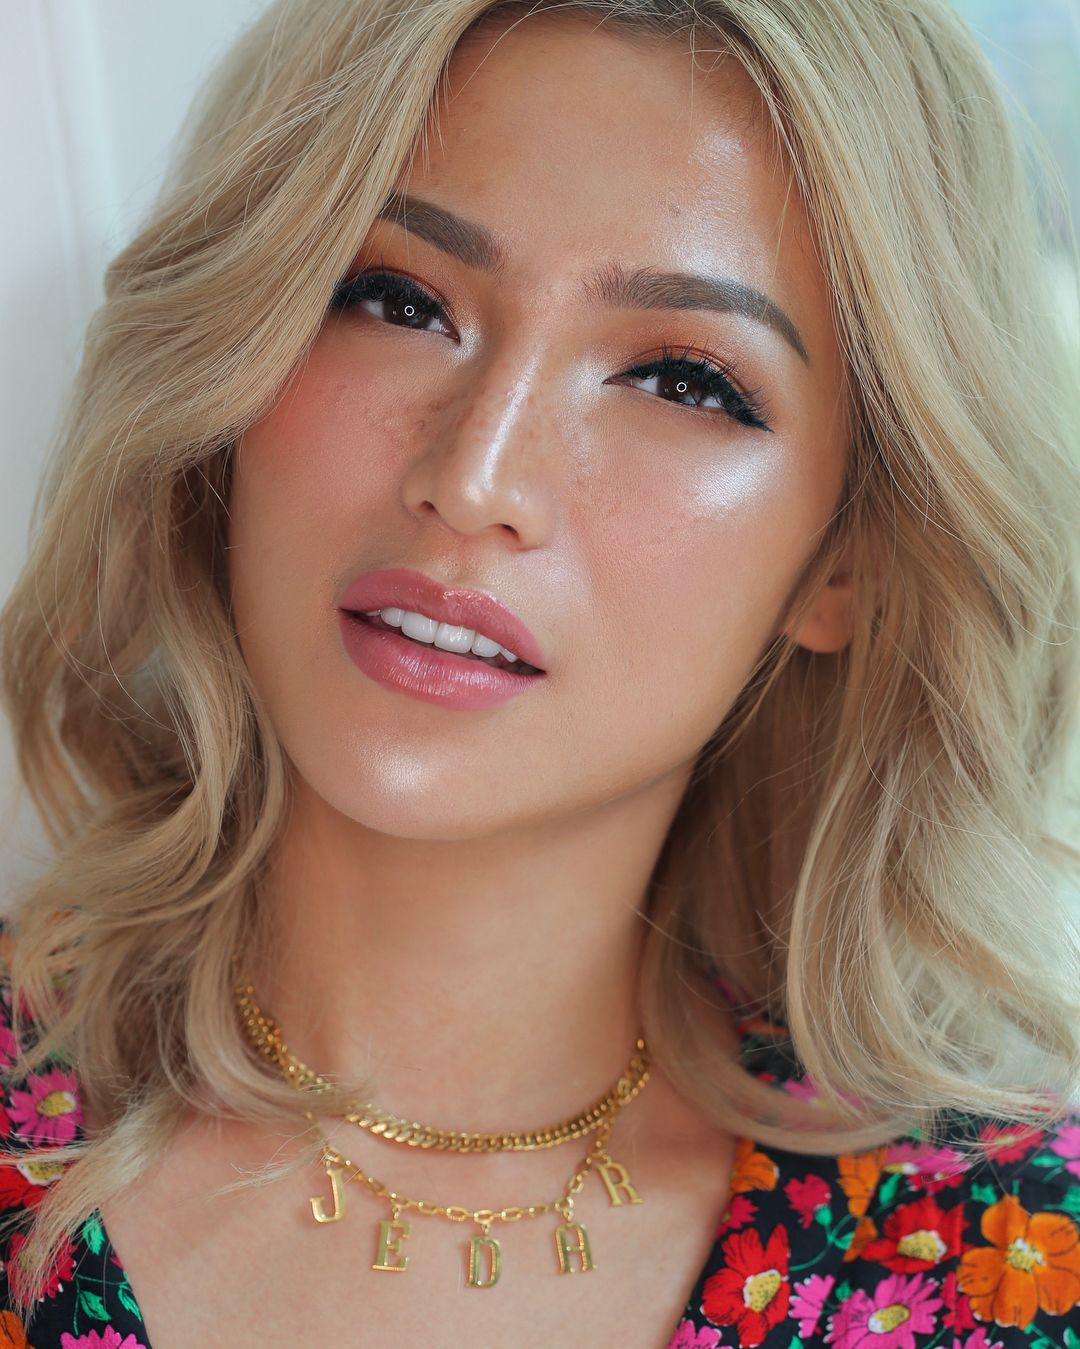 Tips Makeup 'Becek' yang Glowing dan Faux Freckless a la Vinna Gracia